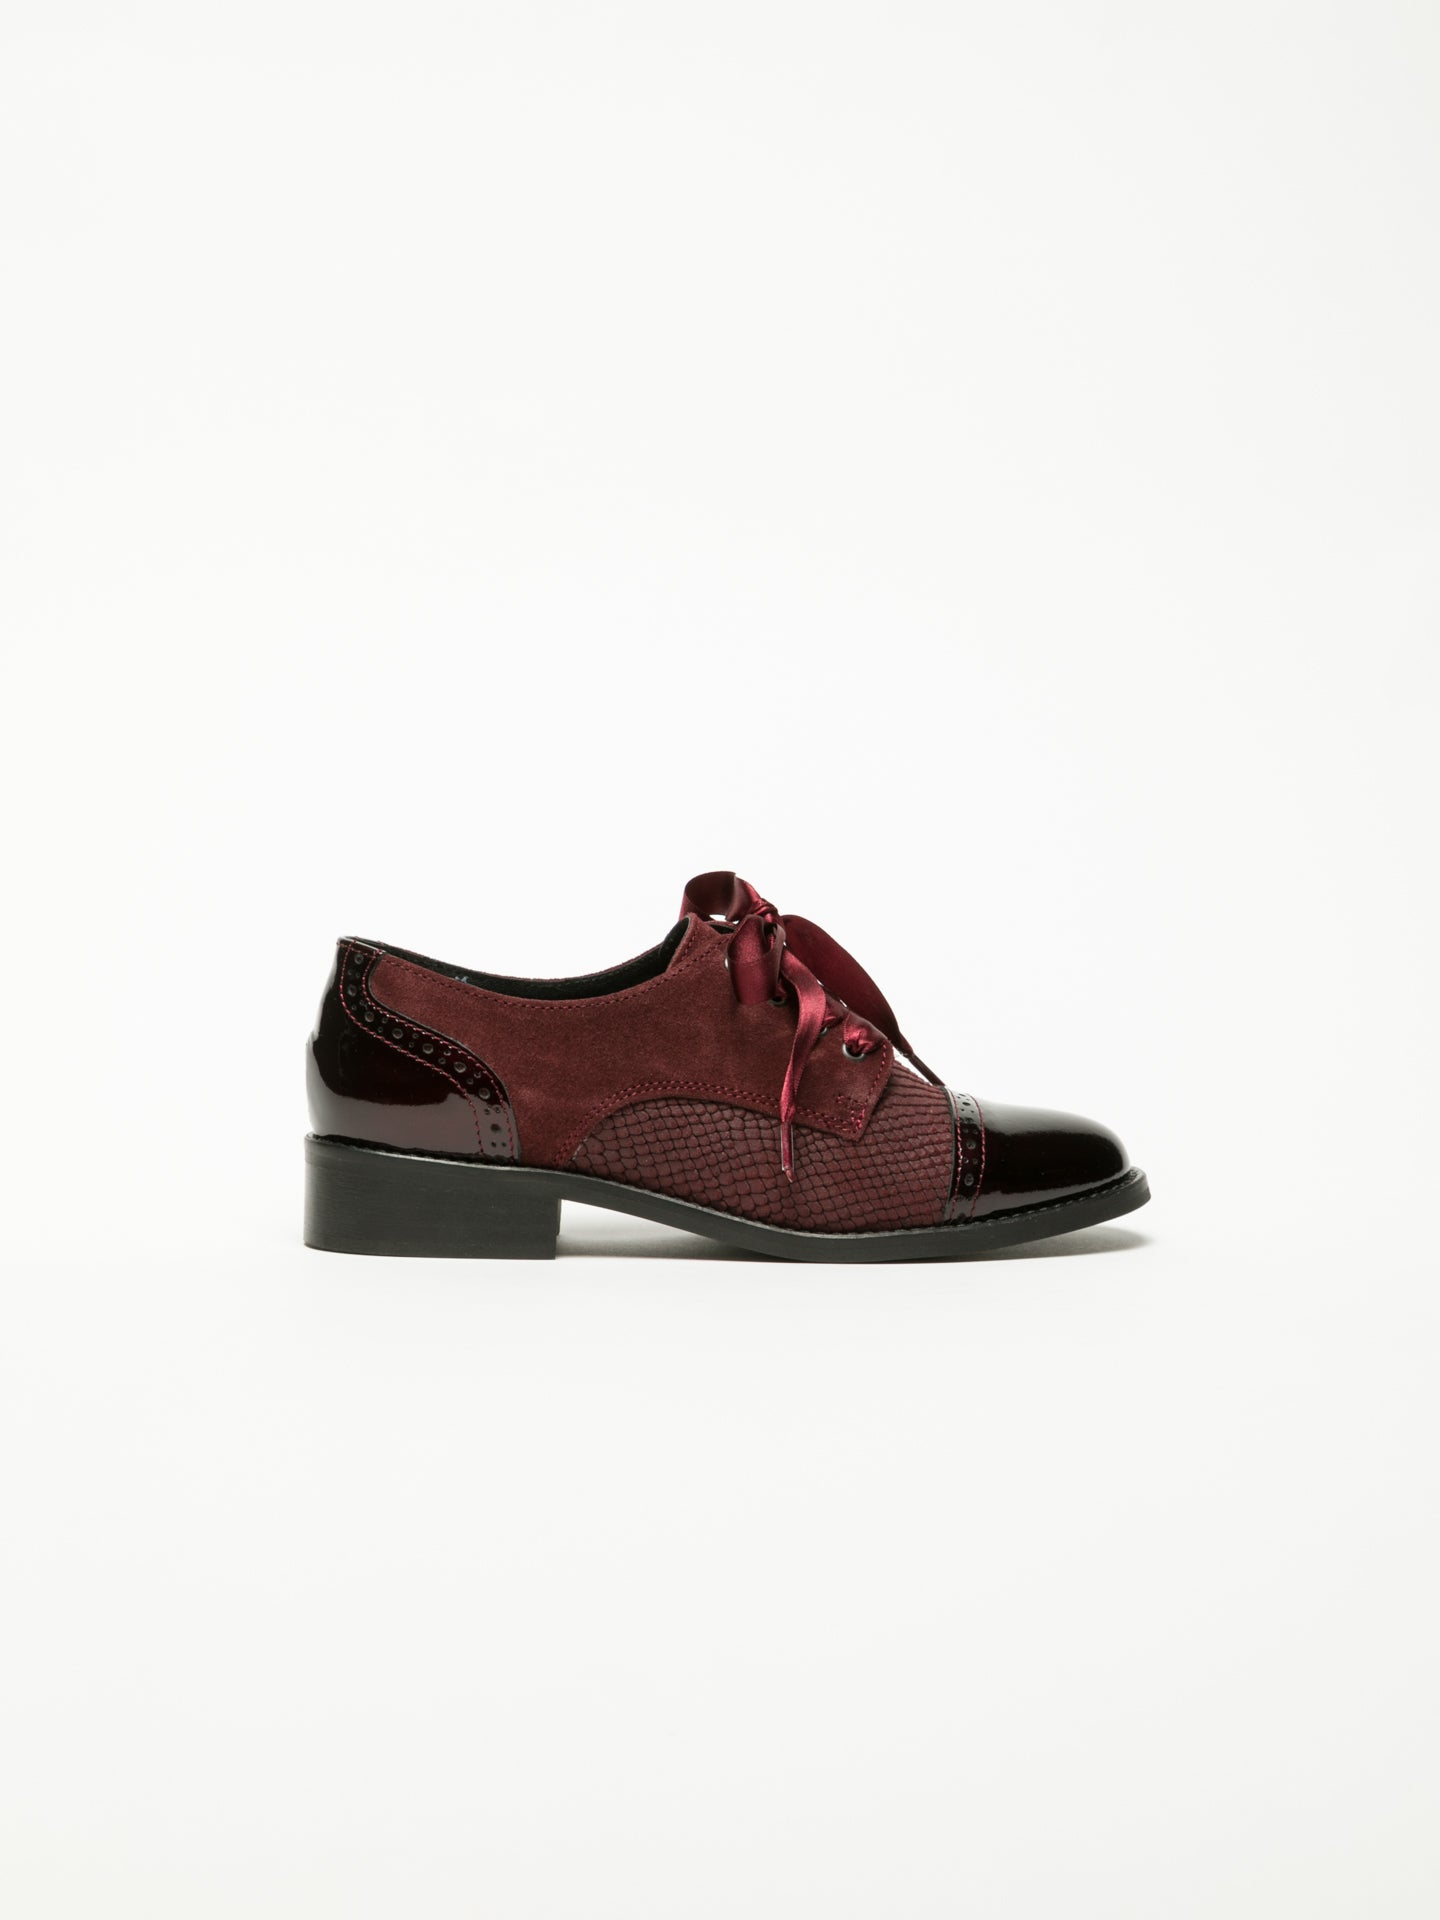 Foreva DarkRed Derby Shoes